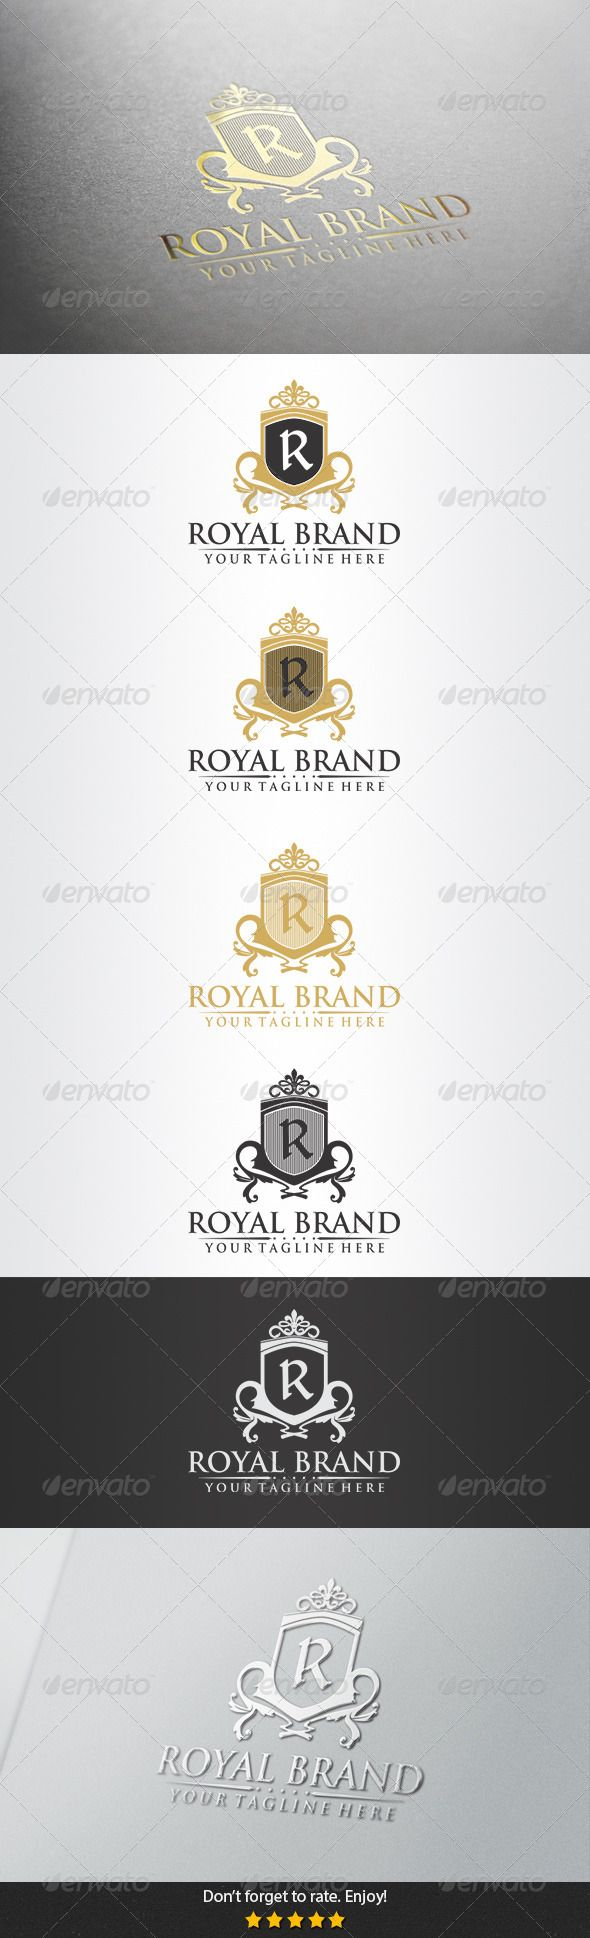 Royal Brand Logo — Vector EPS #education #royal blue • Available here → https://graphicriver.net/item/royal-brand-logo/5380974?ref=pxcr